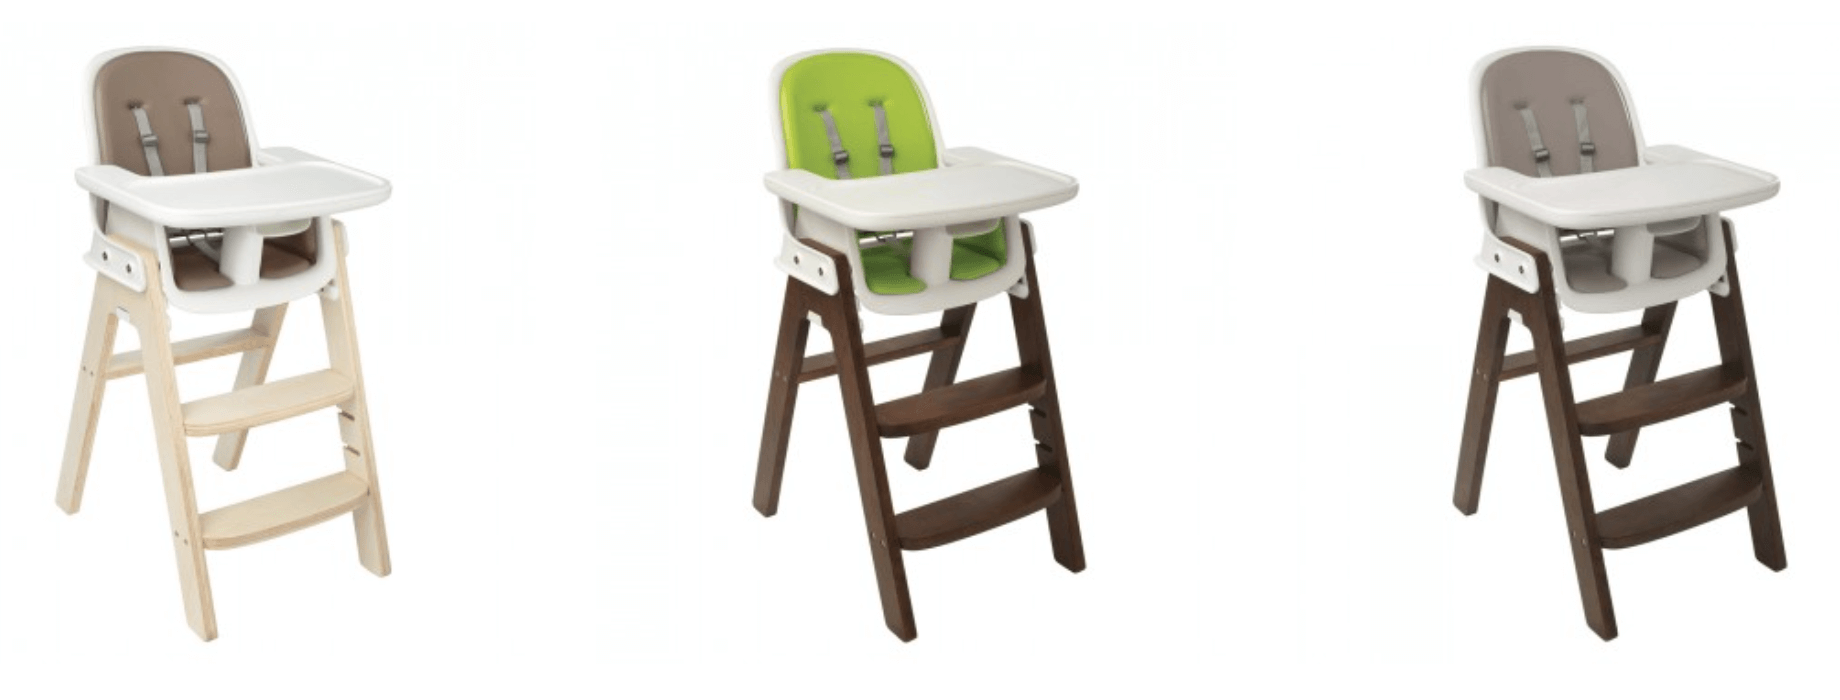 Oxo Tot Sprout High Chair Review My Top Baby Gear Hi